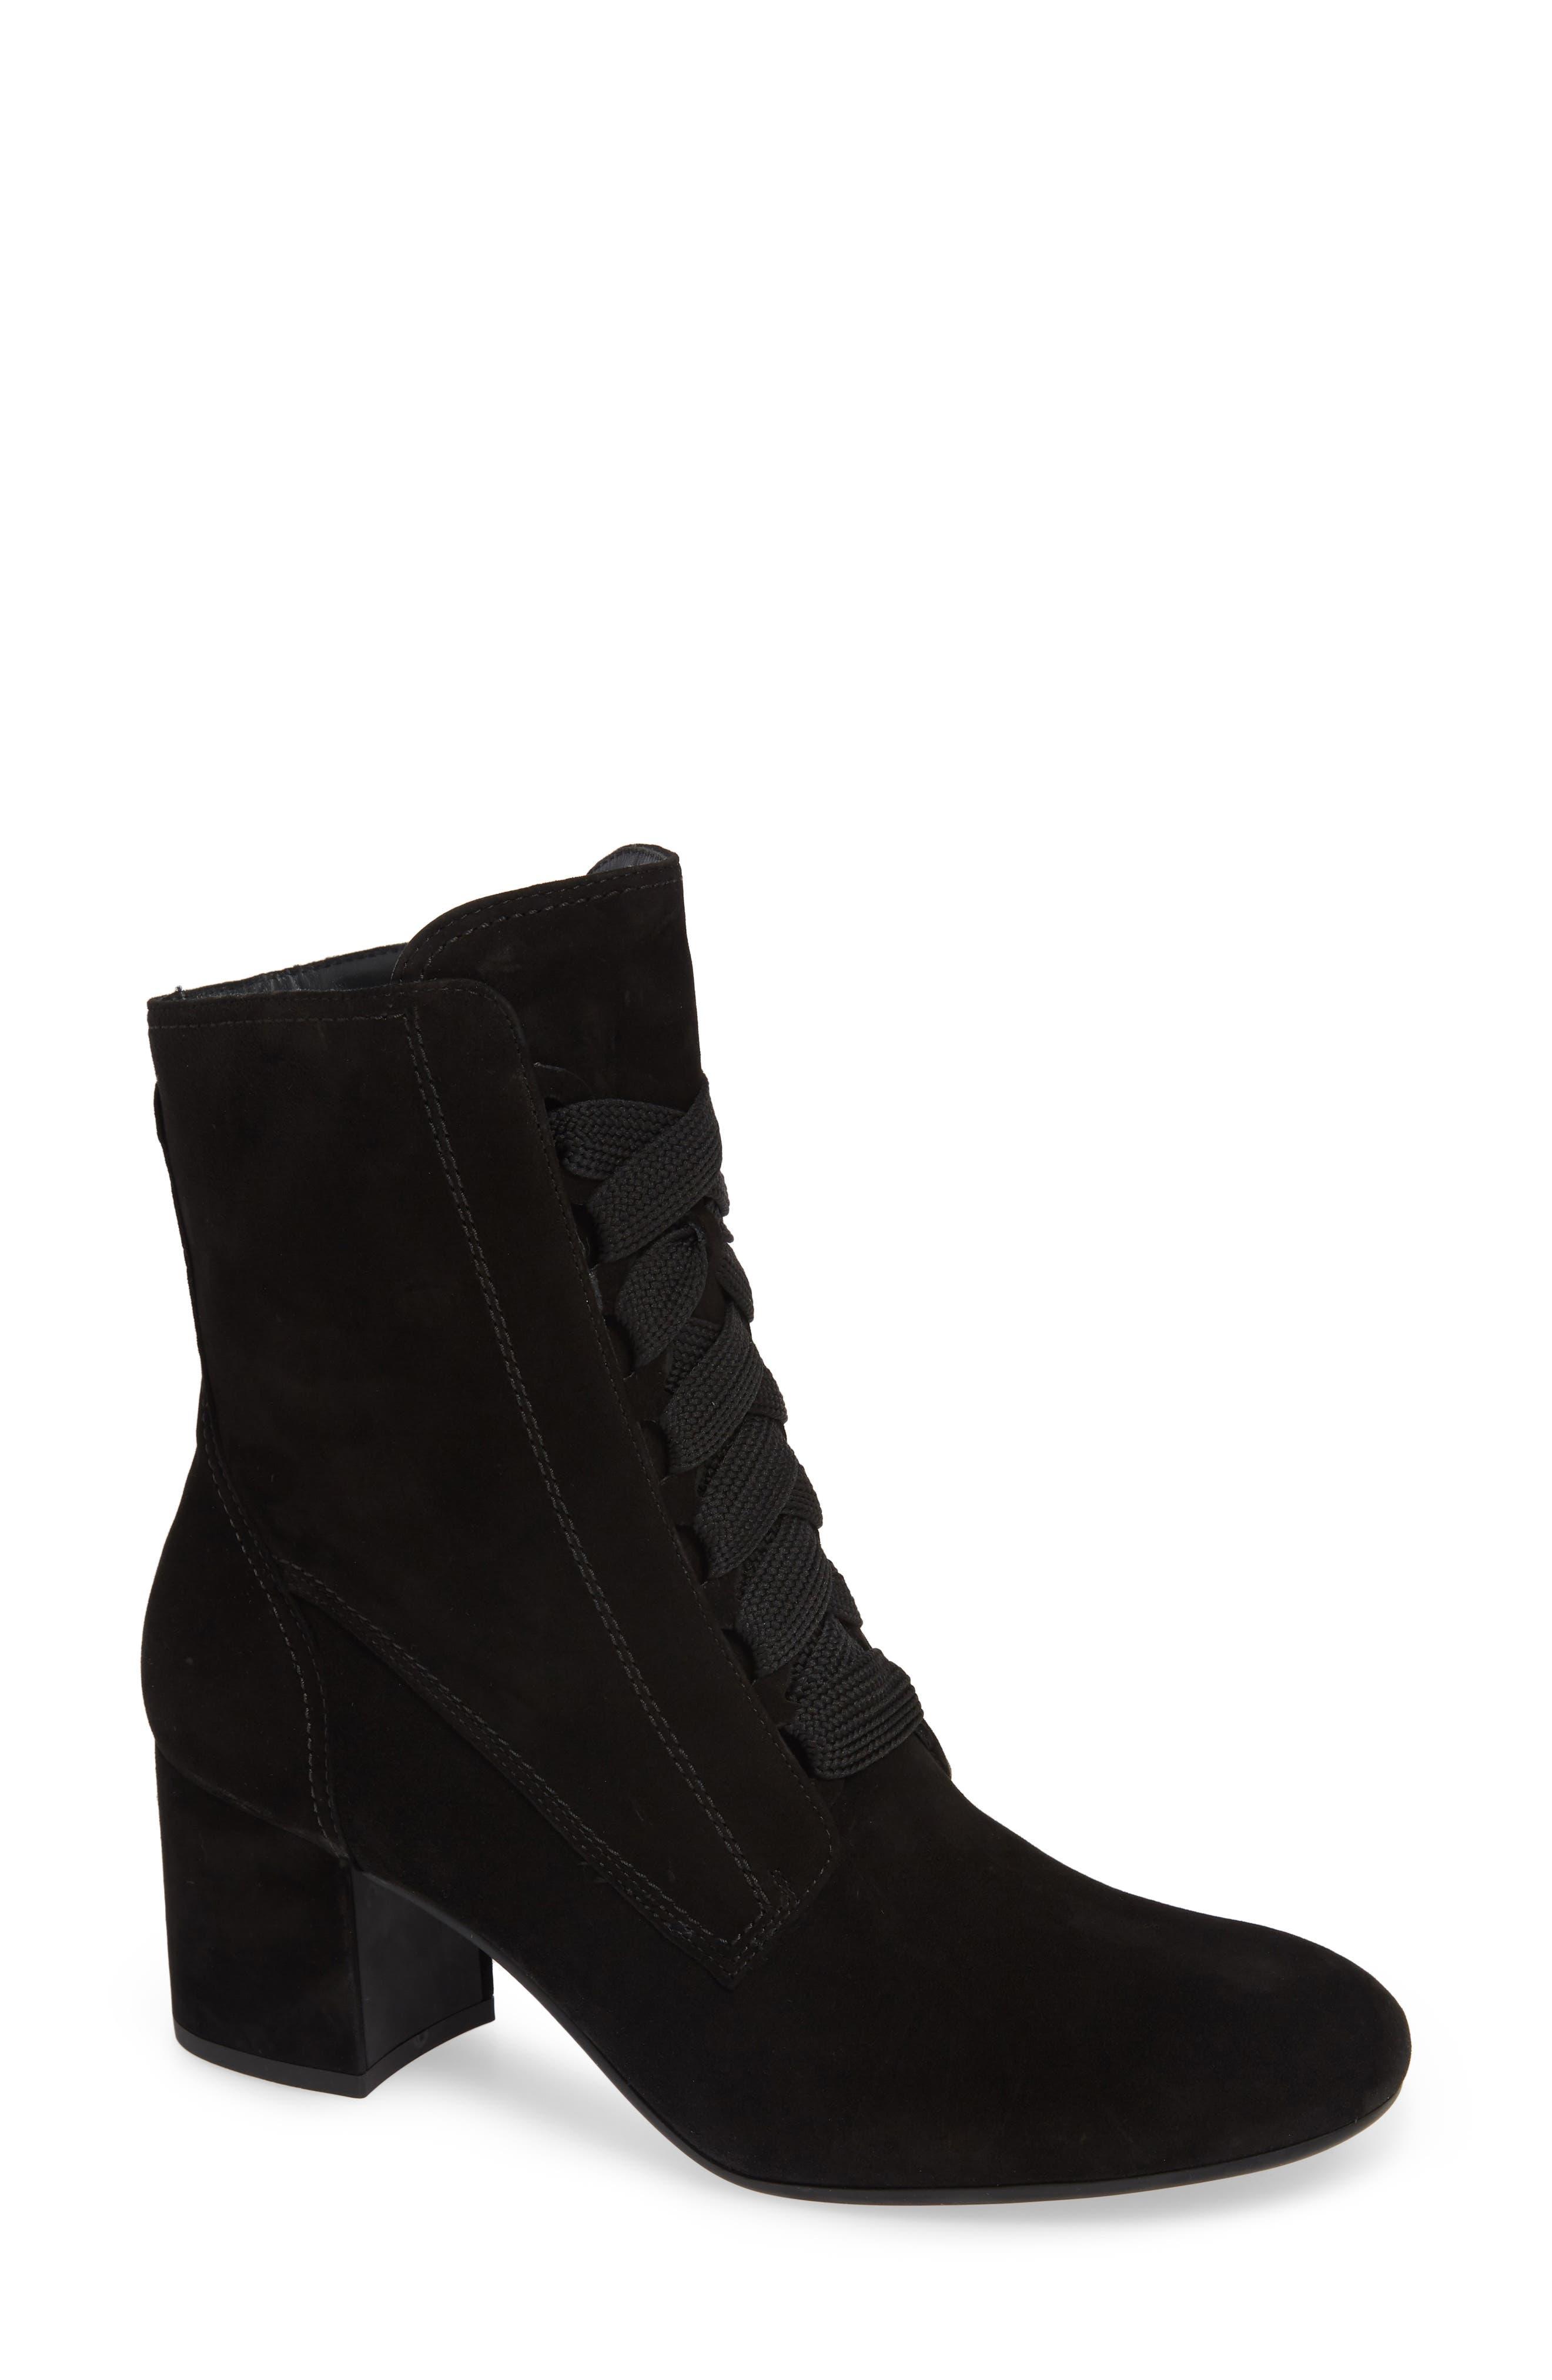 Paul Green Tracy Lace-Up Bootie, US / 7.5UK - Black